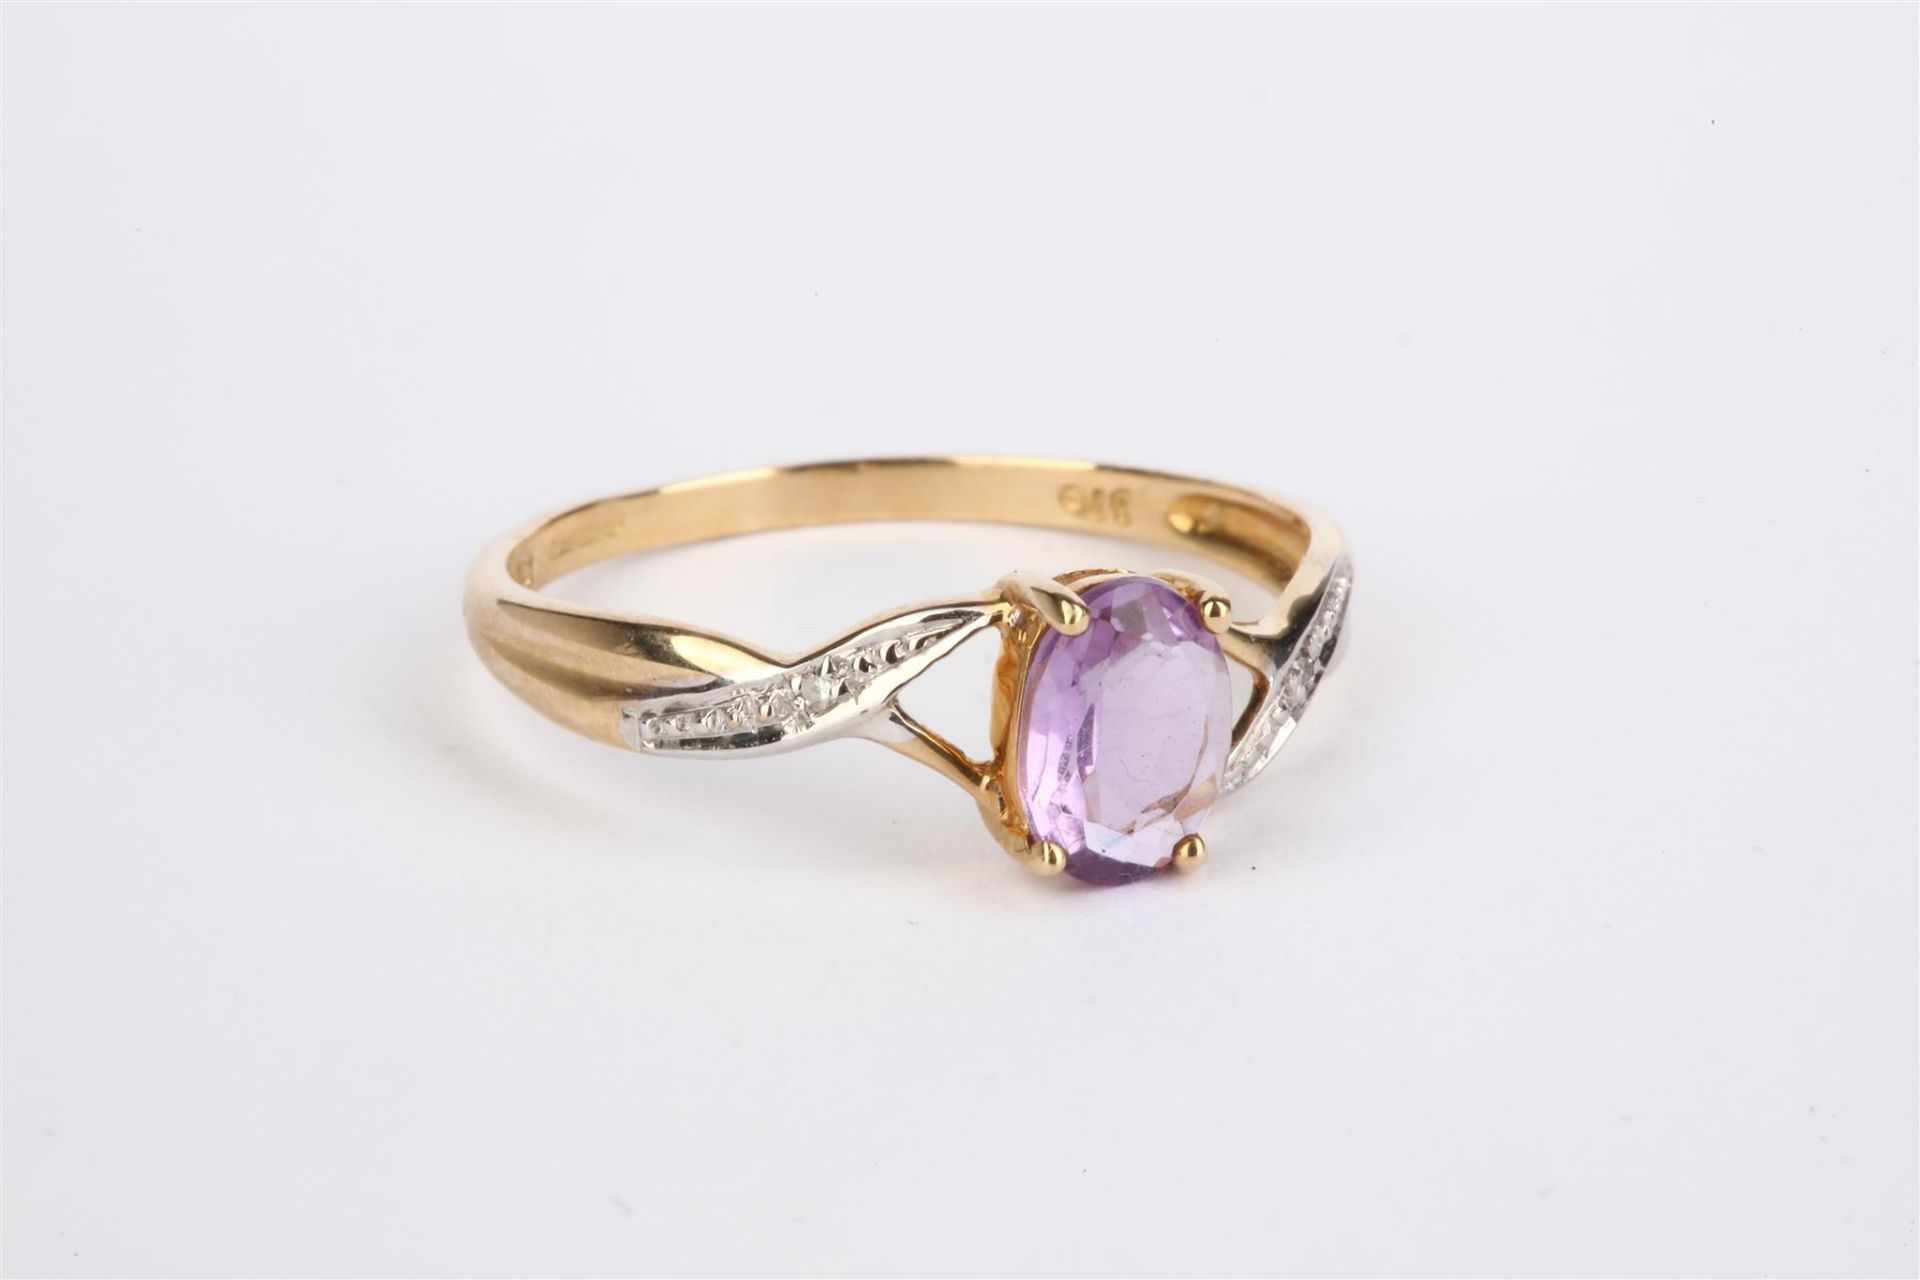 + VAT Ladies 9ct Yellow Gold Amethyst And Diamond Ring With Central Amethyst And Diamonds Mounted